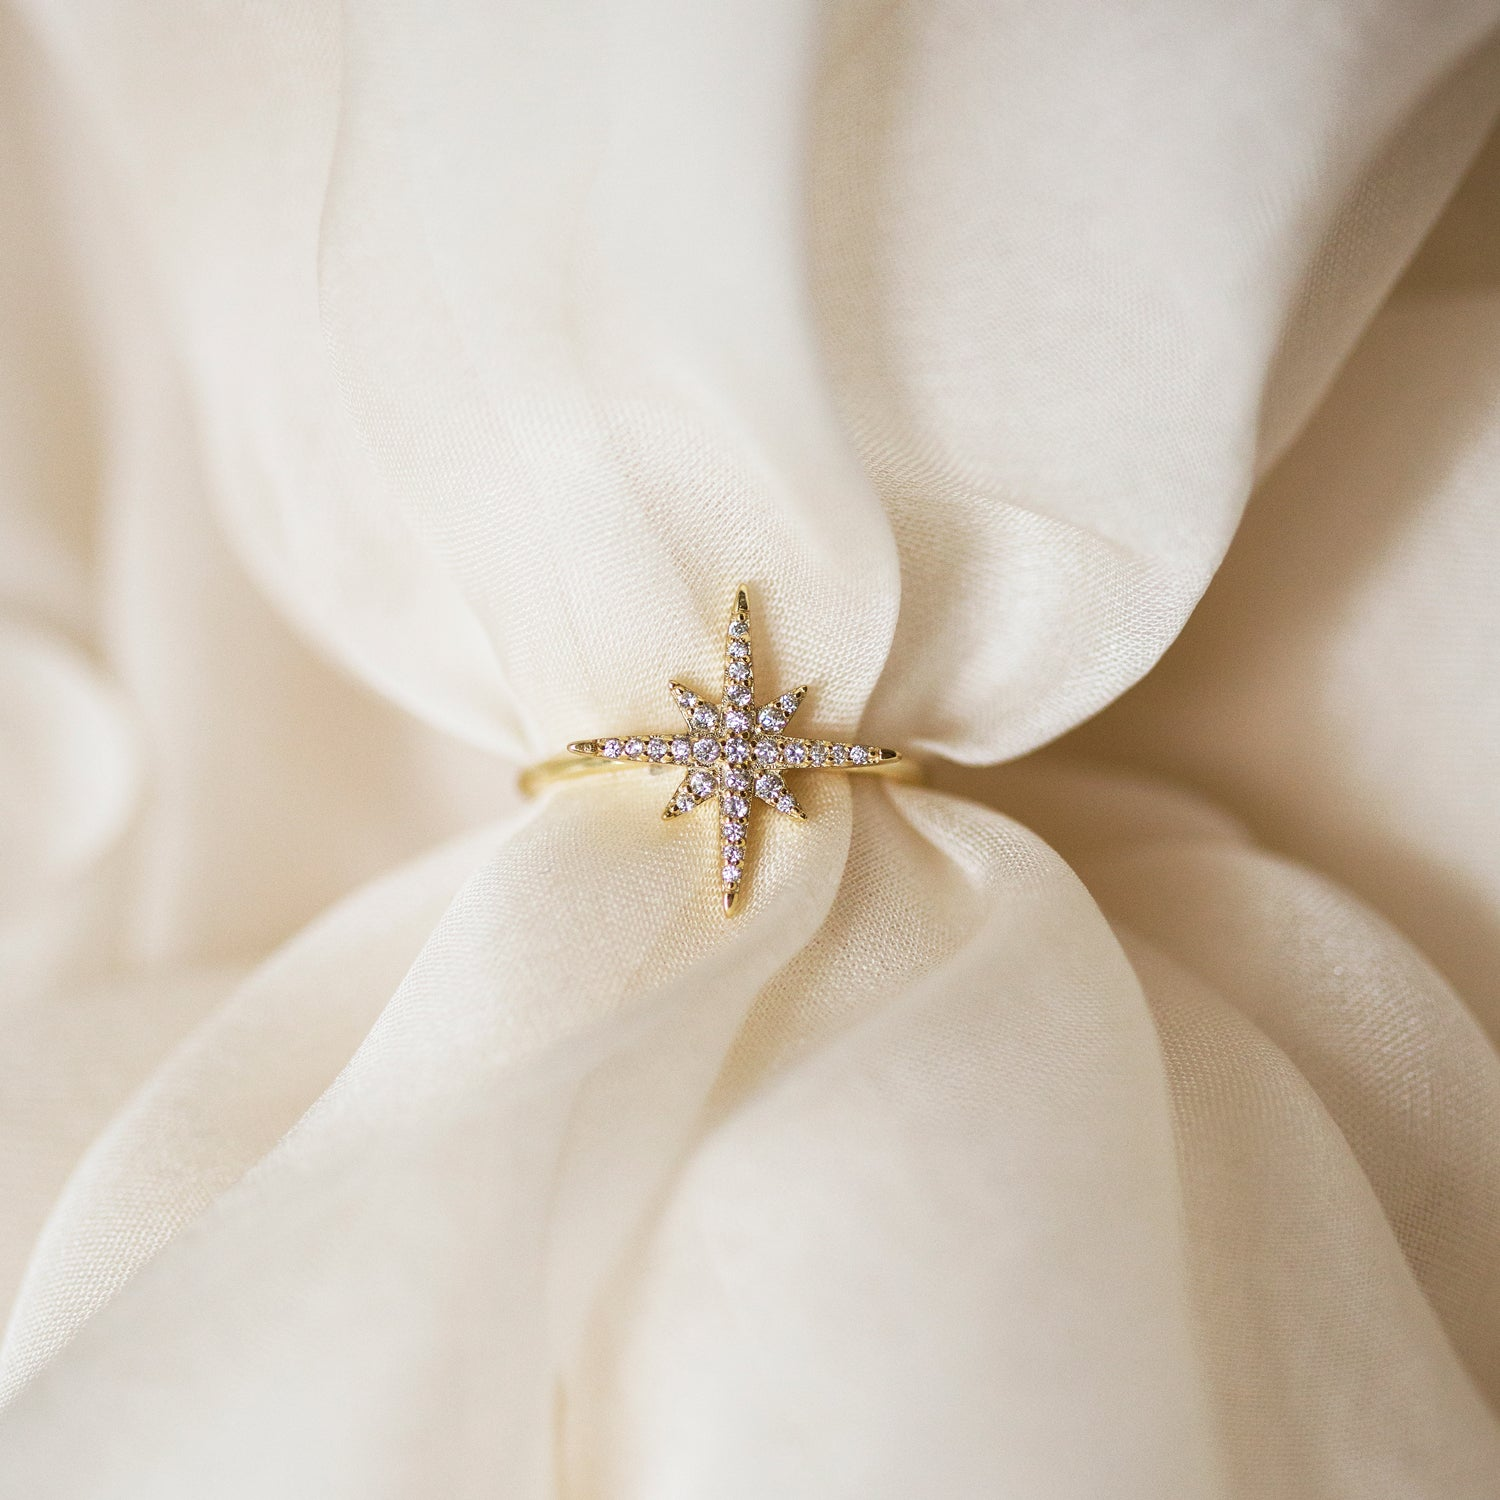 Celeste Star Ring, Rings - AMY O. Jewelry